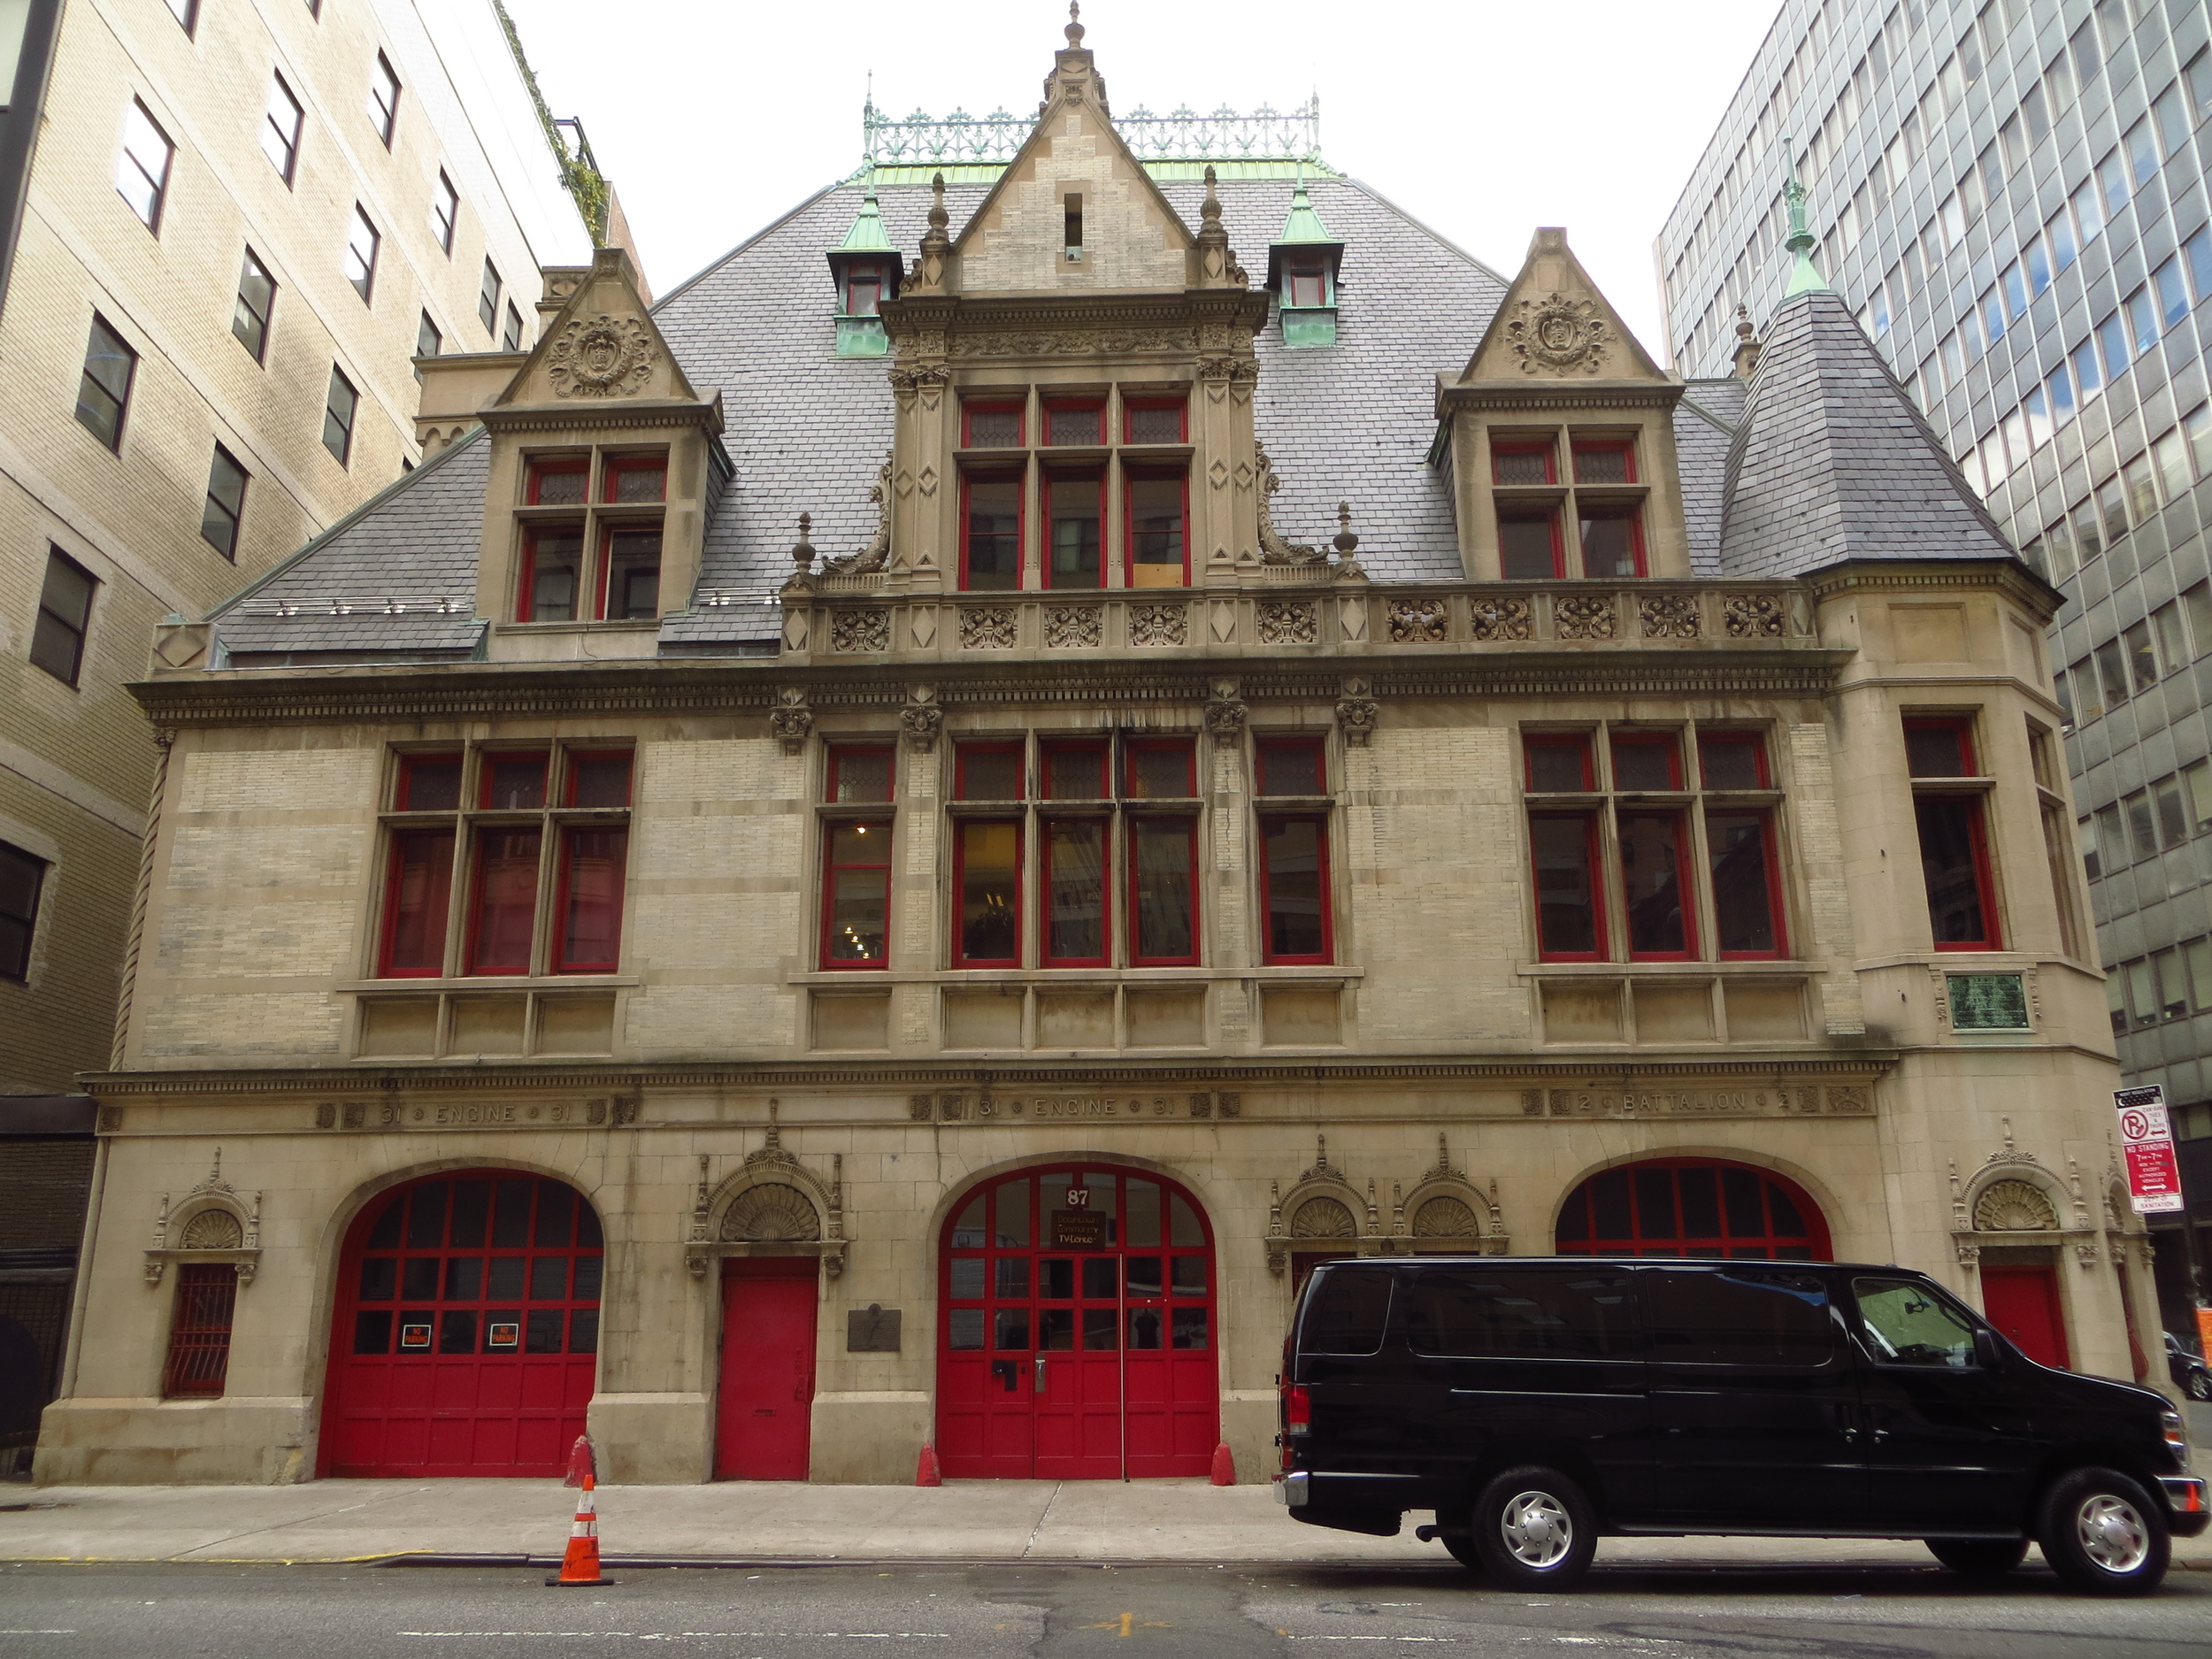 Cool old firehouse (b. 1895)